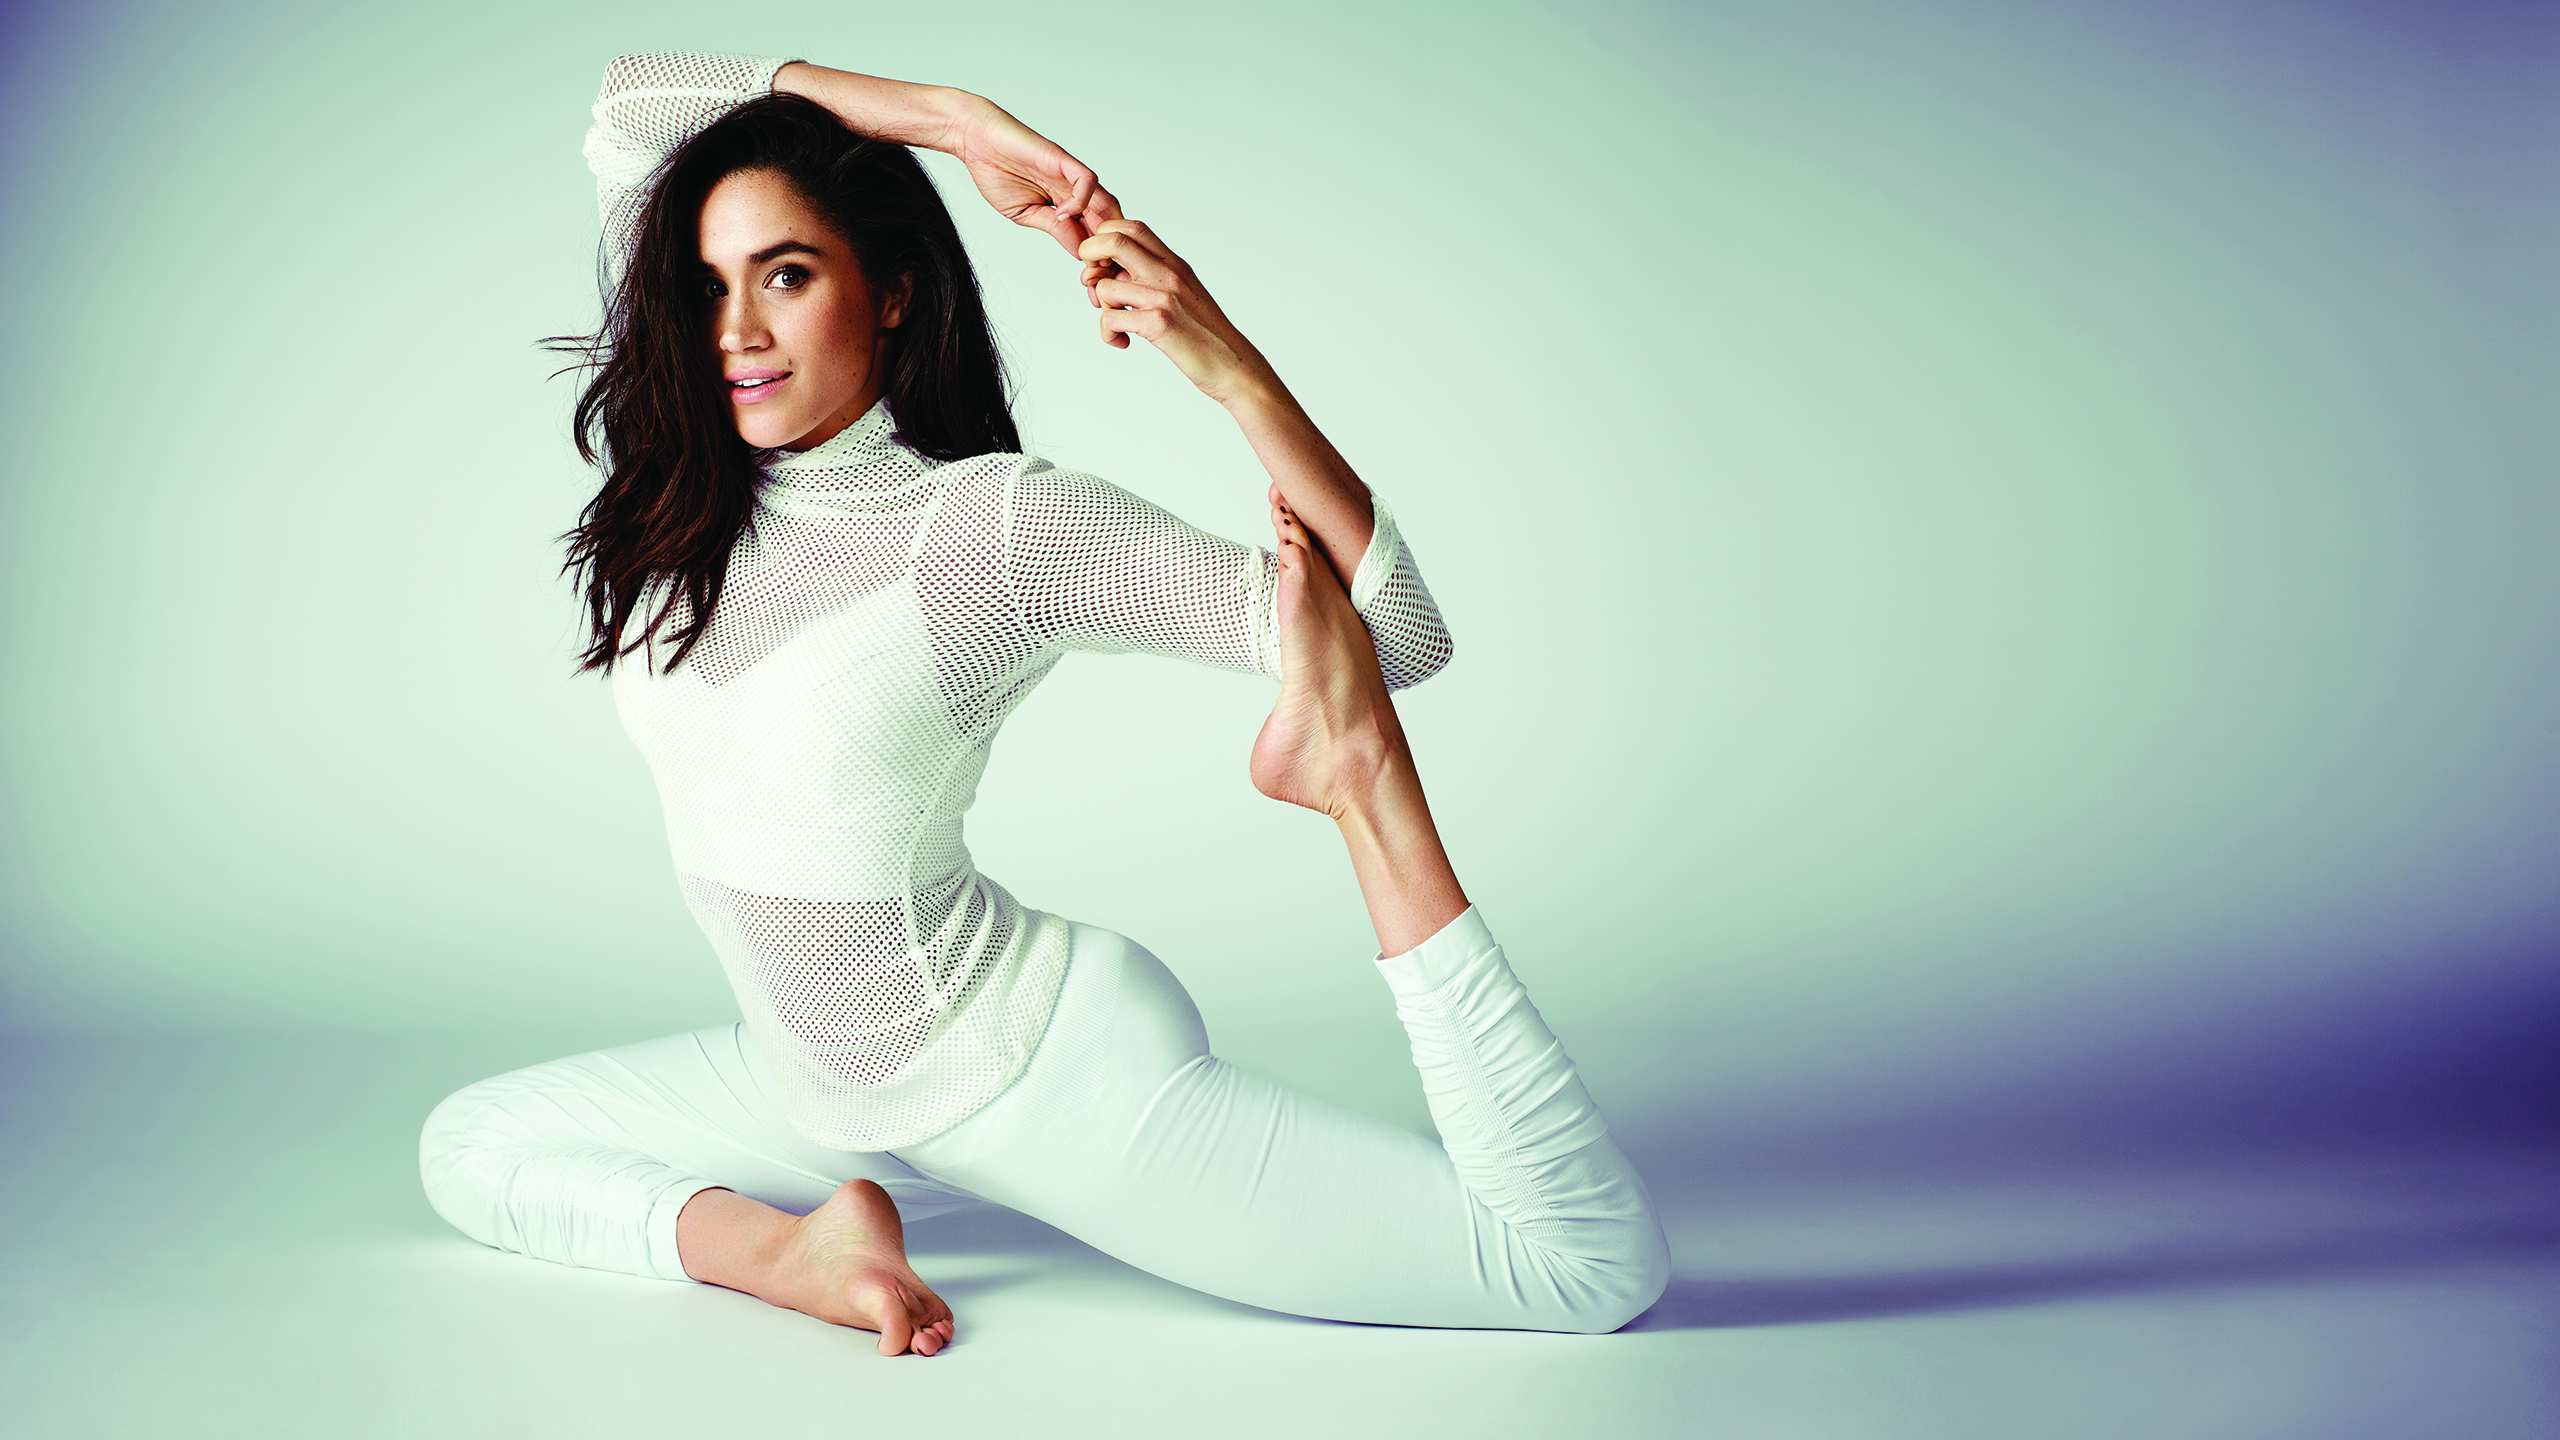 Meghan-Markle-Yoga-Story Day in the Life: Meghan Markle